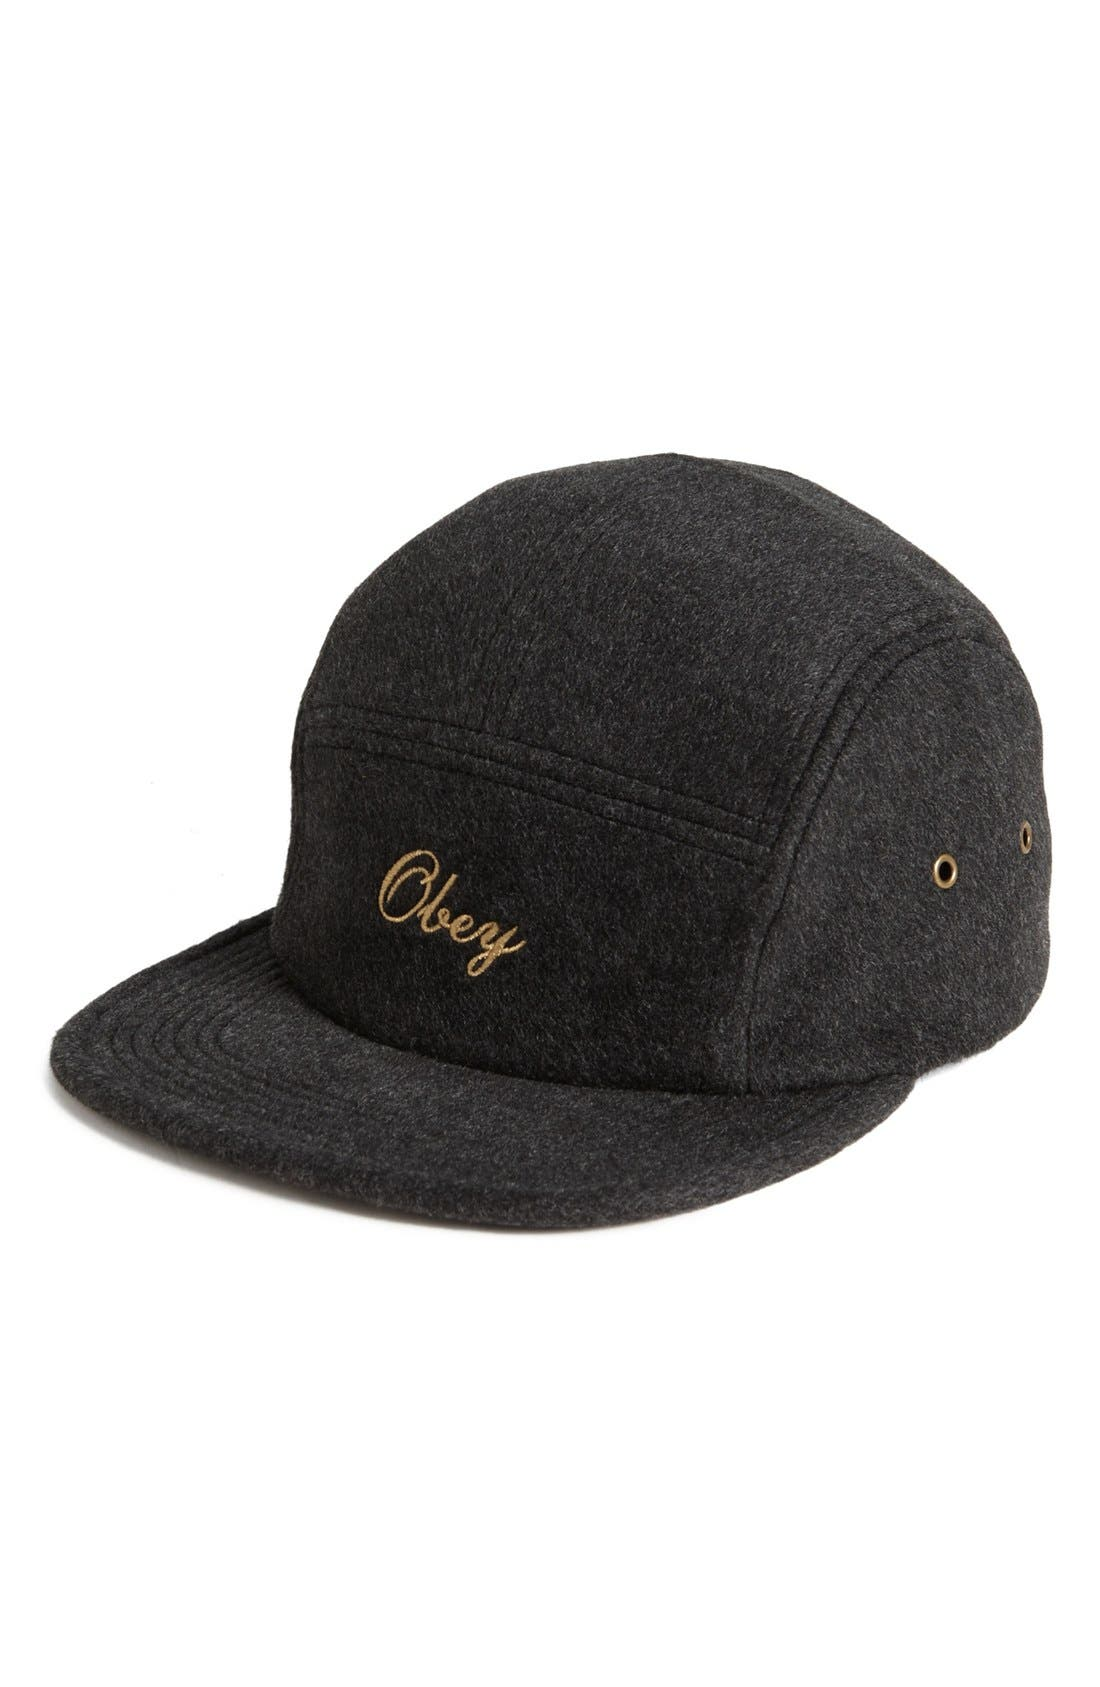 Alternate Image 1 Selected - Obey 'Outdoor' Five Panel Cap